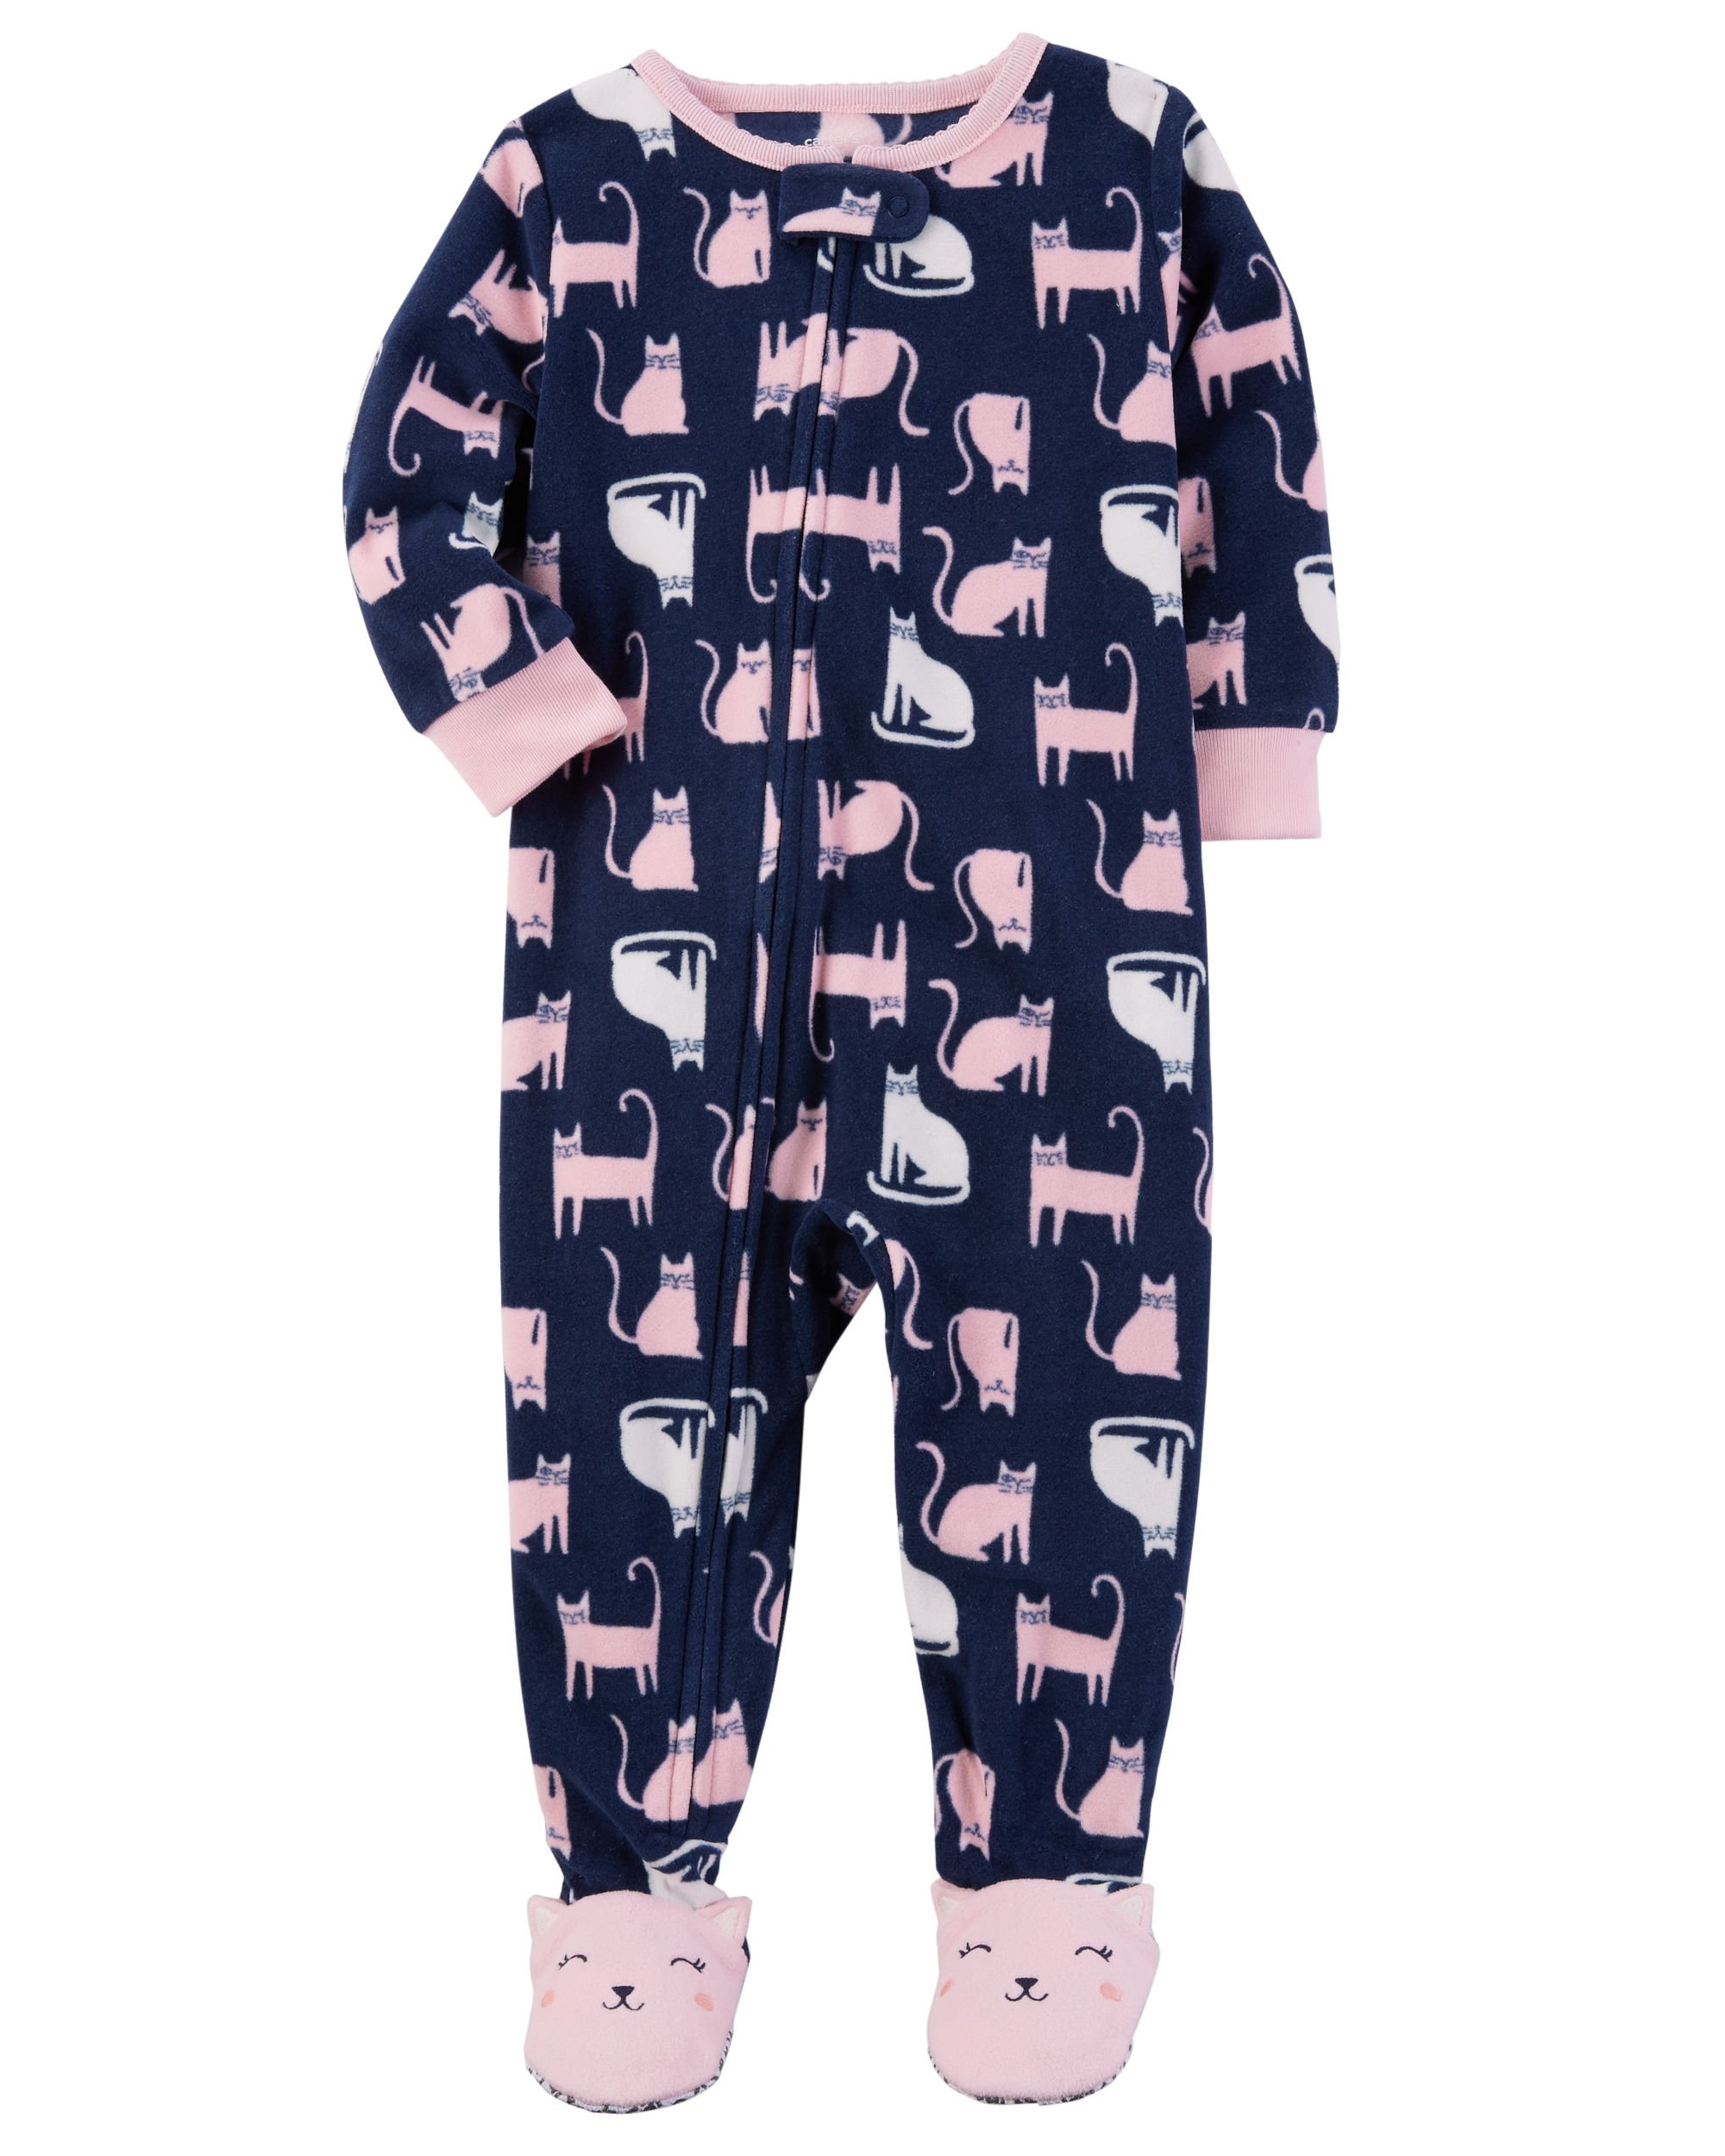 e8776138c081 Galleon - Carter s Girls Fleece Sleeper Pajamas (8